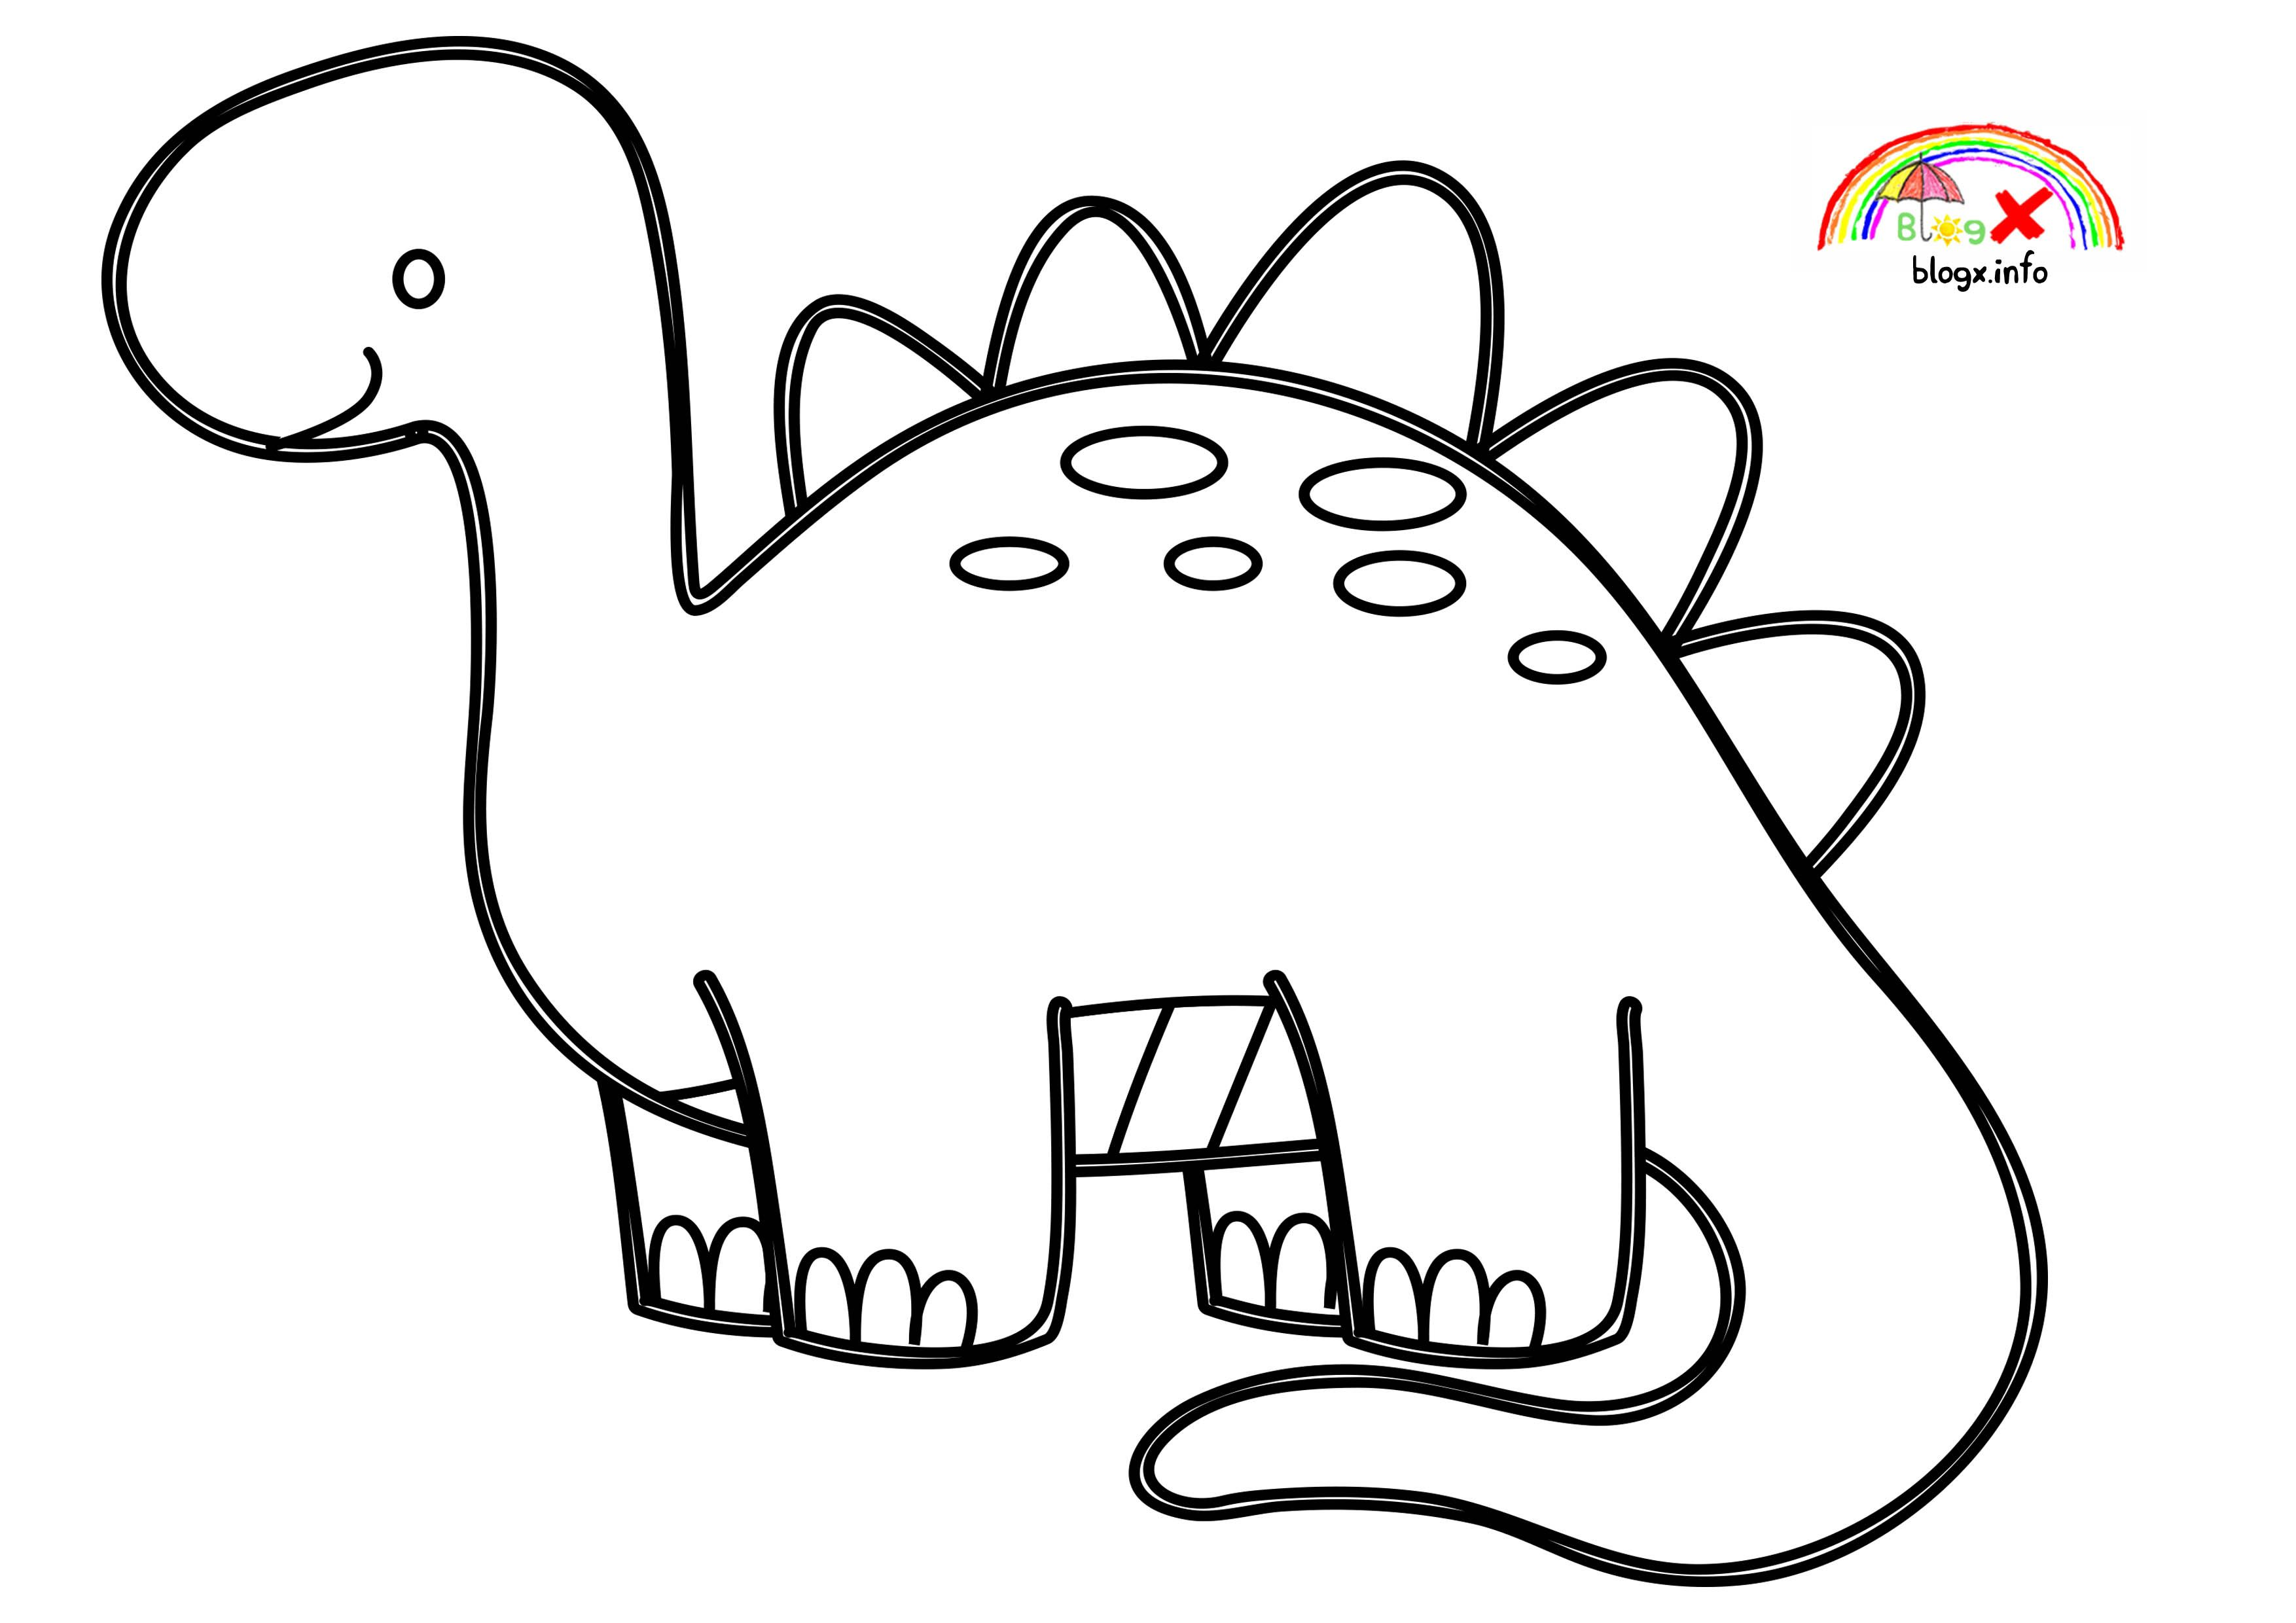 dinosaur coloring easy 37 printable dinosaur coloring pages animal pages print easy dinosaur coloring